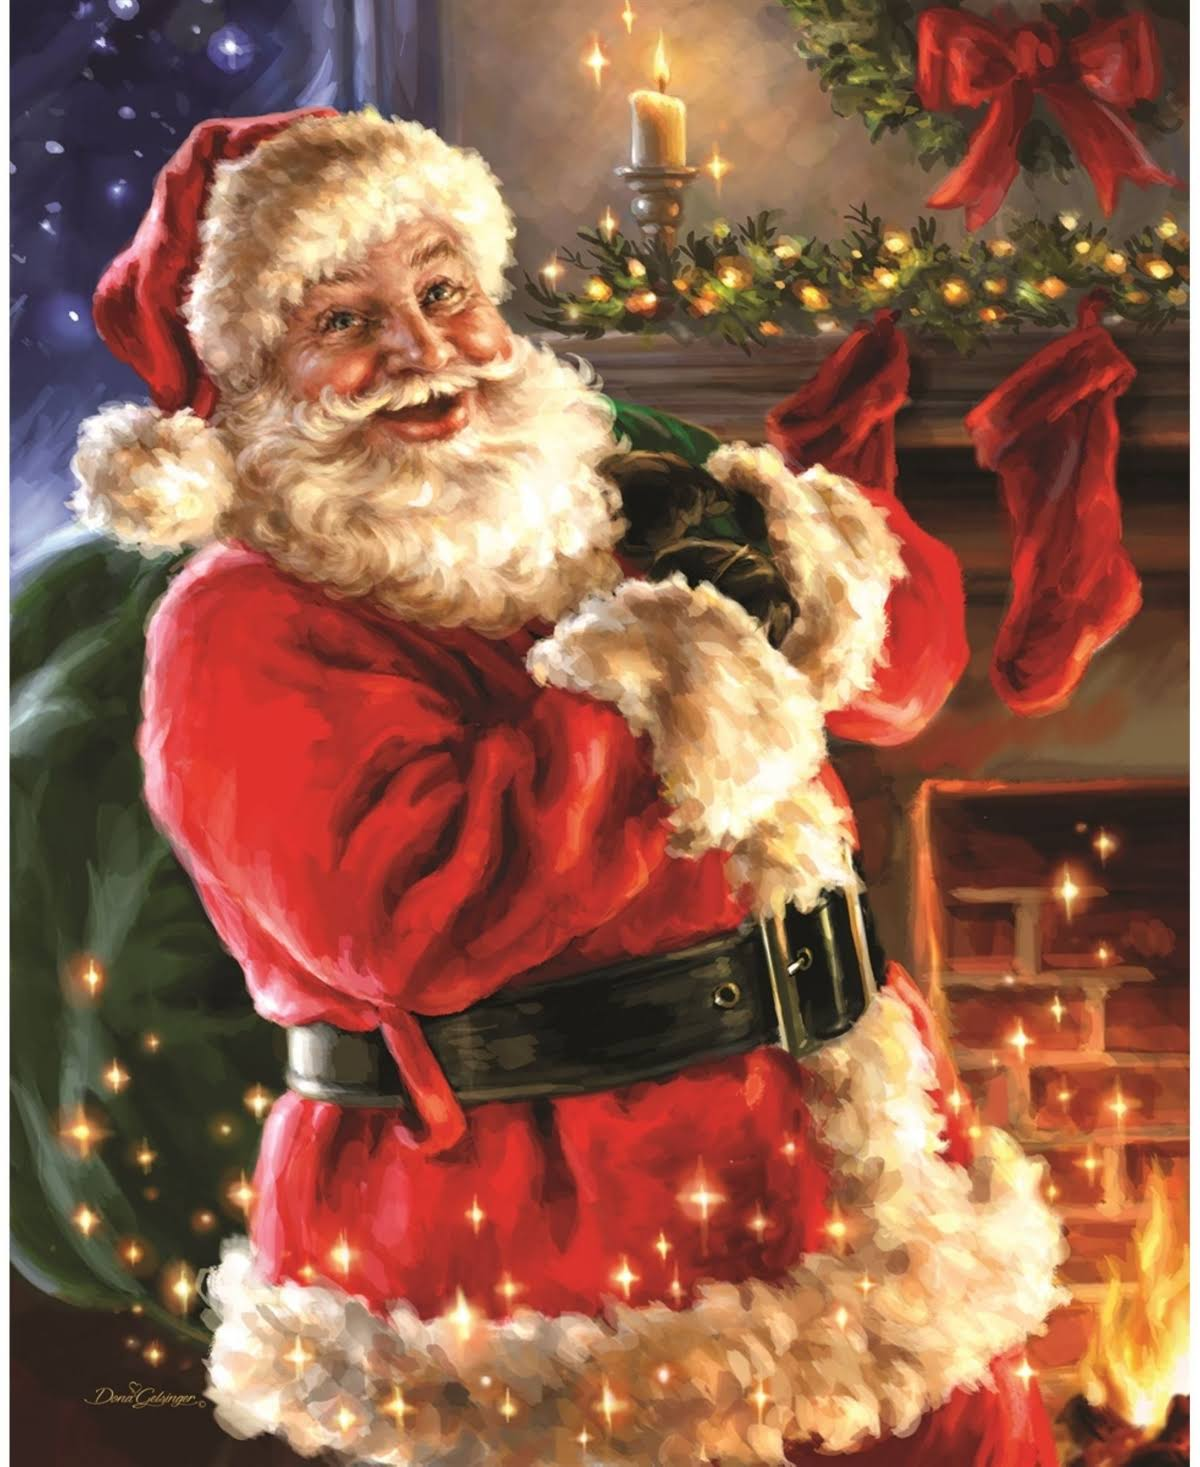 Night Before Christmas CC Exc Jigsaw Puzzle - 1000pcs